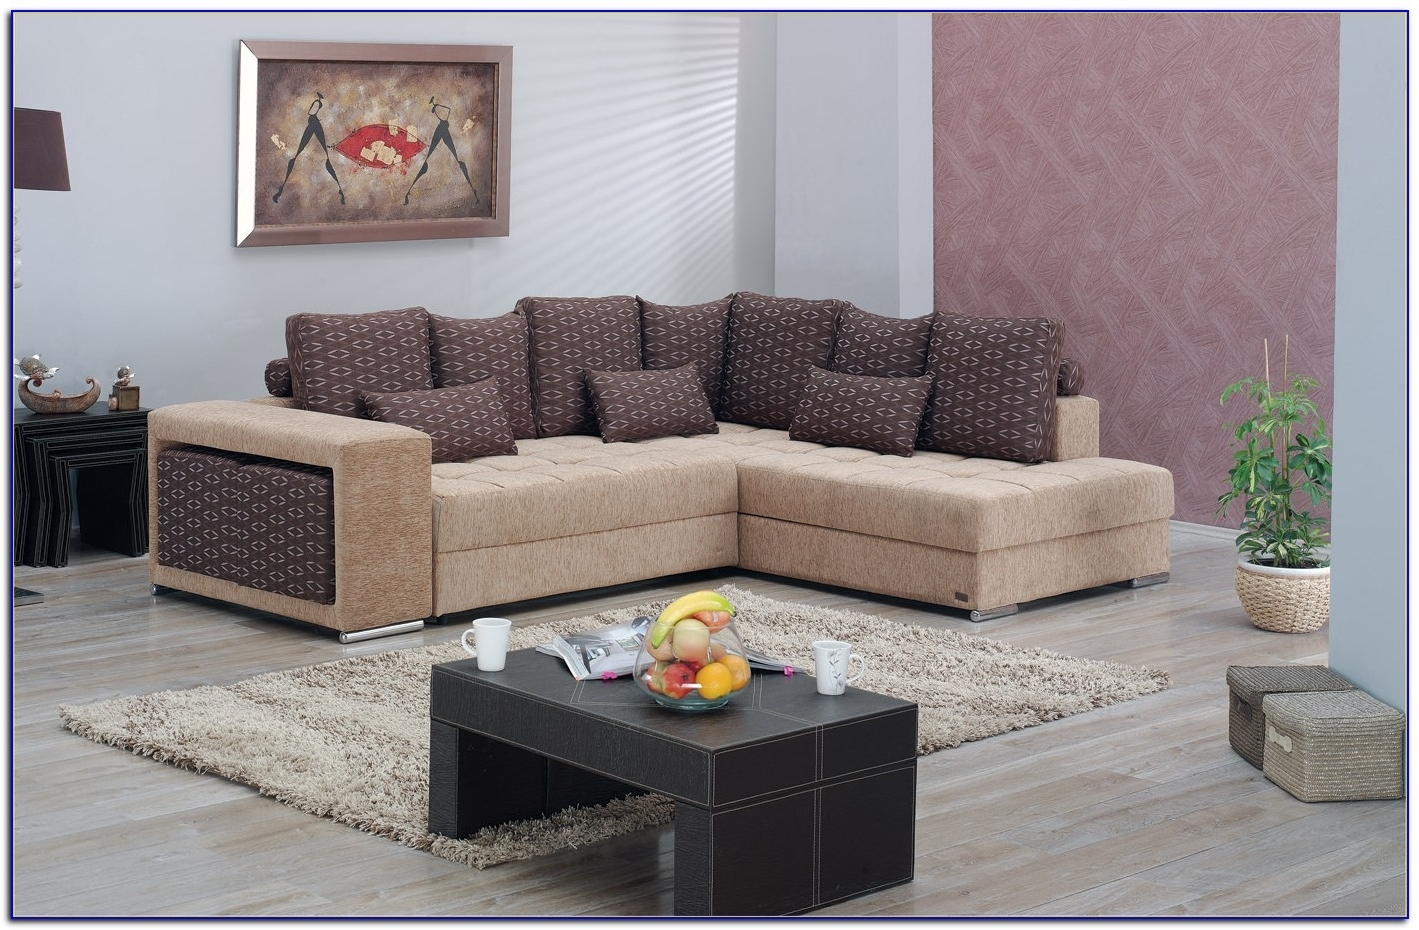 Kmart Sectional Sofas with regard to Current Fancy Kmart Sectional Sofa 82 For Sectional Sofas Ct With Kmart